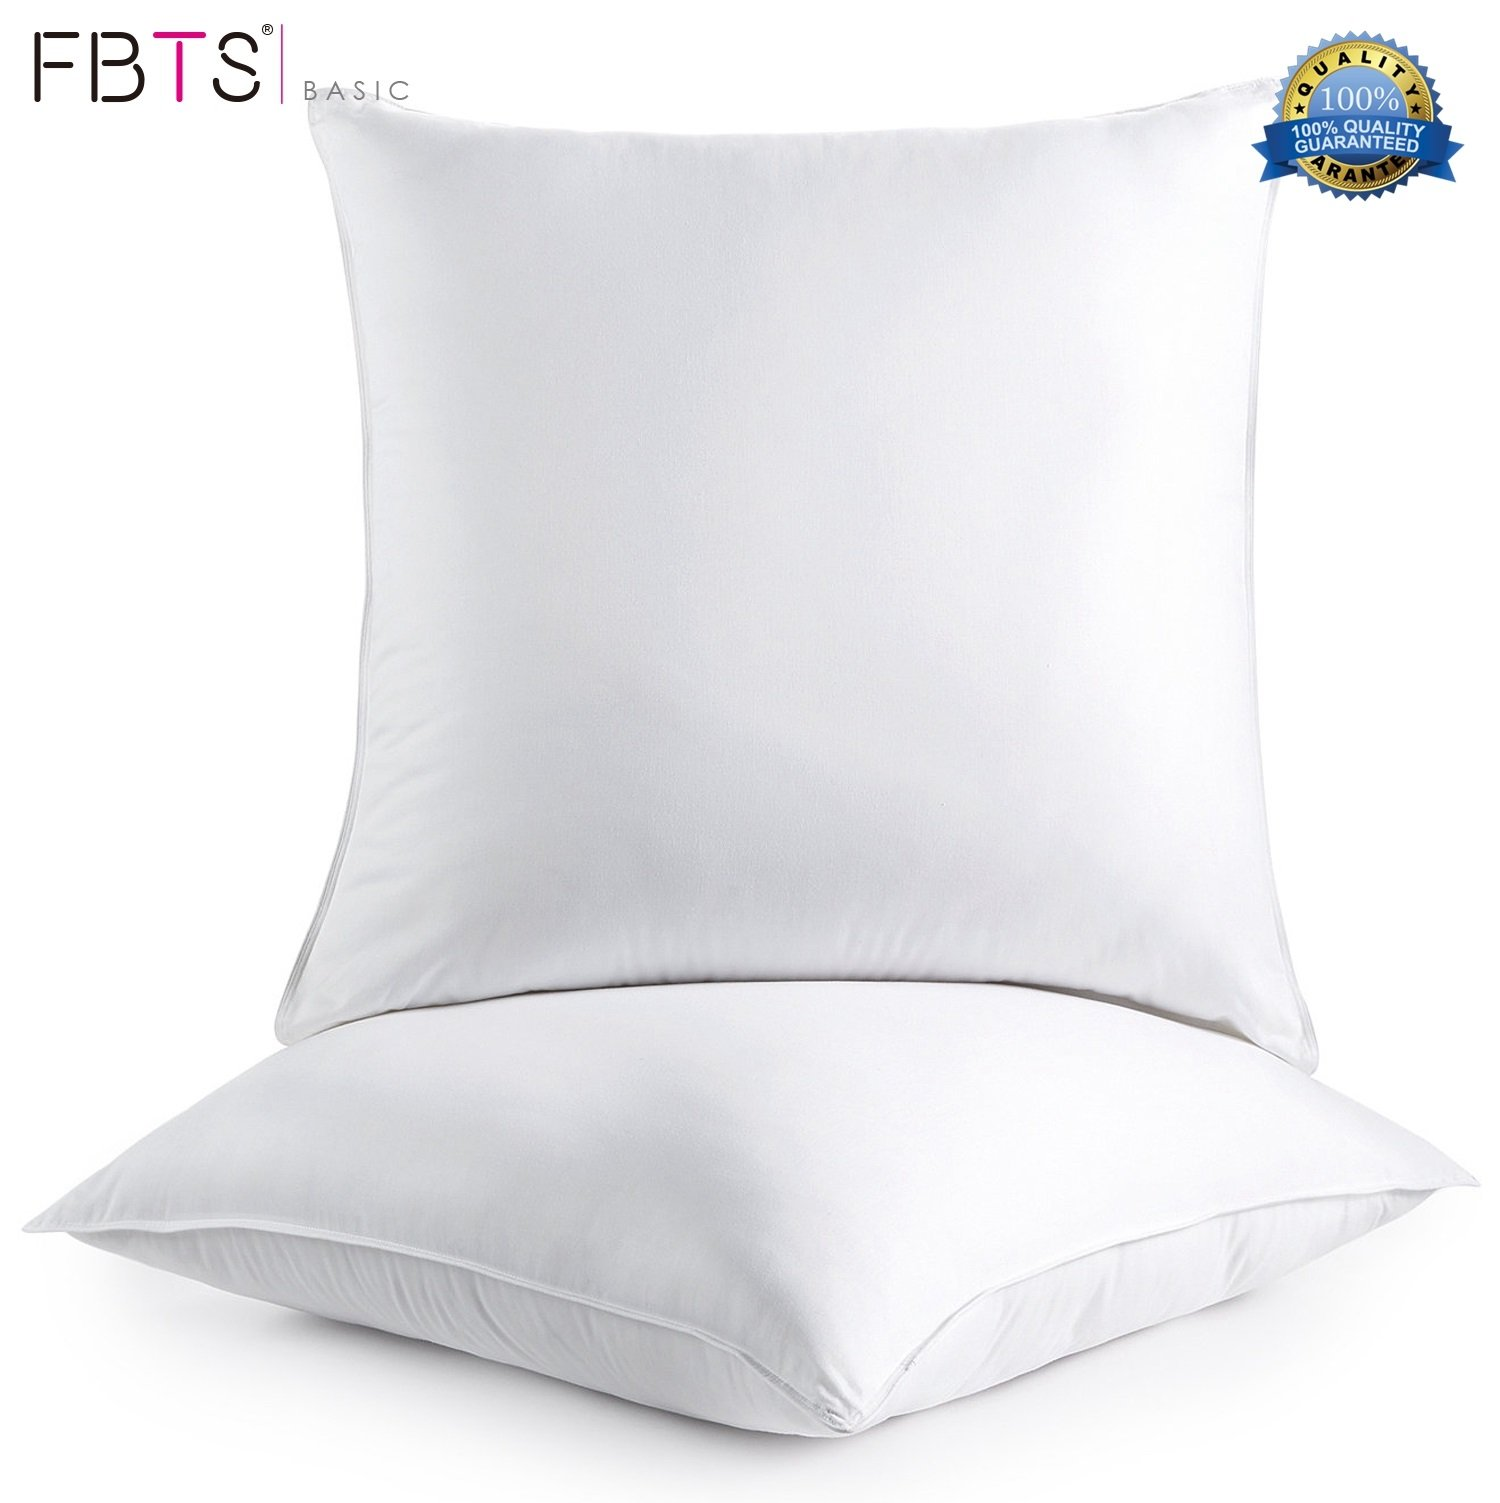 FBTS Basic Pillow Insert 2 Packs 18x18 Inch Square Sham Stuffer Premium Hypoallergenic Pillow Forms for Decorative Cushion Sofa Couch and Bed Pillows